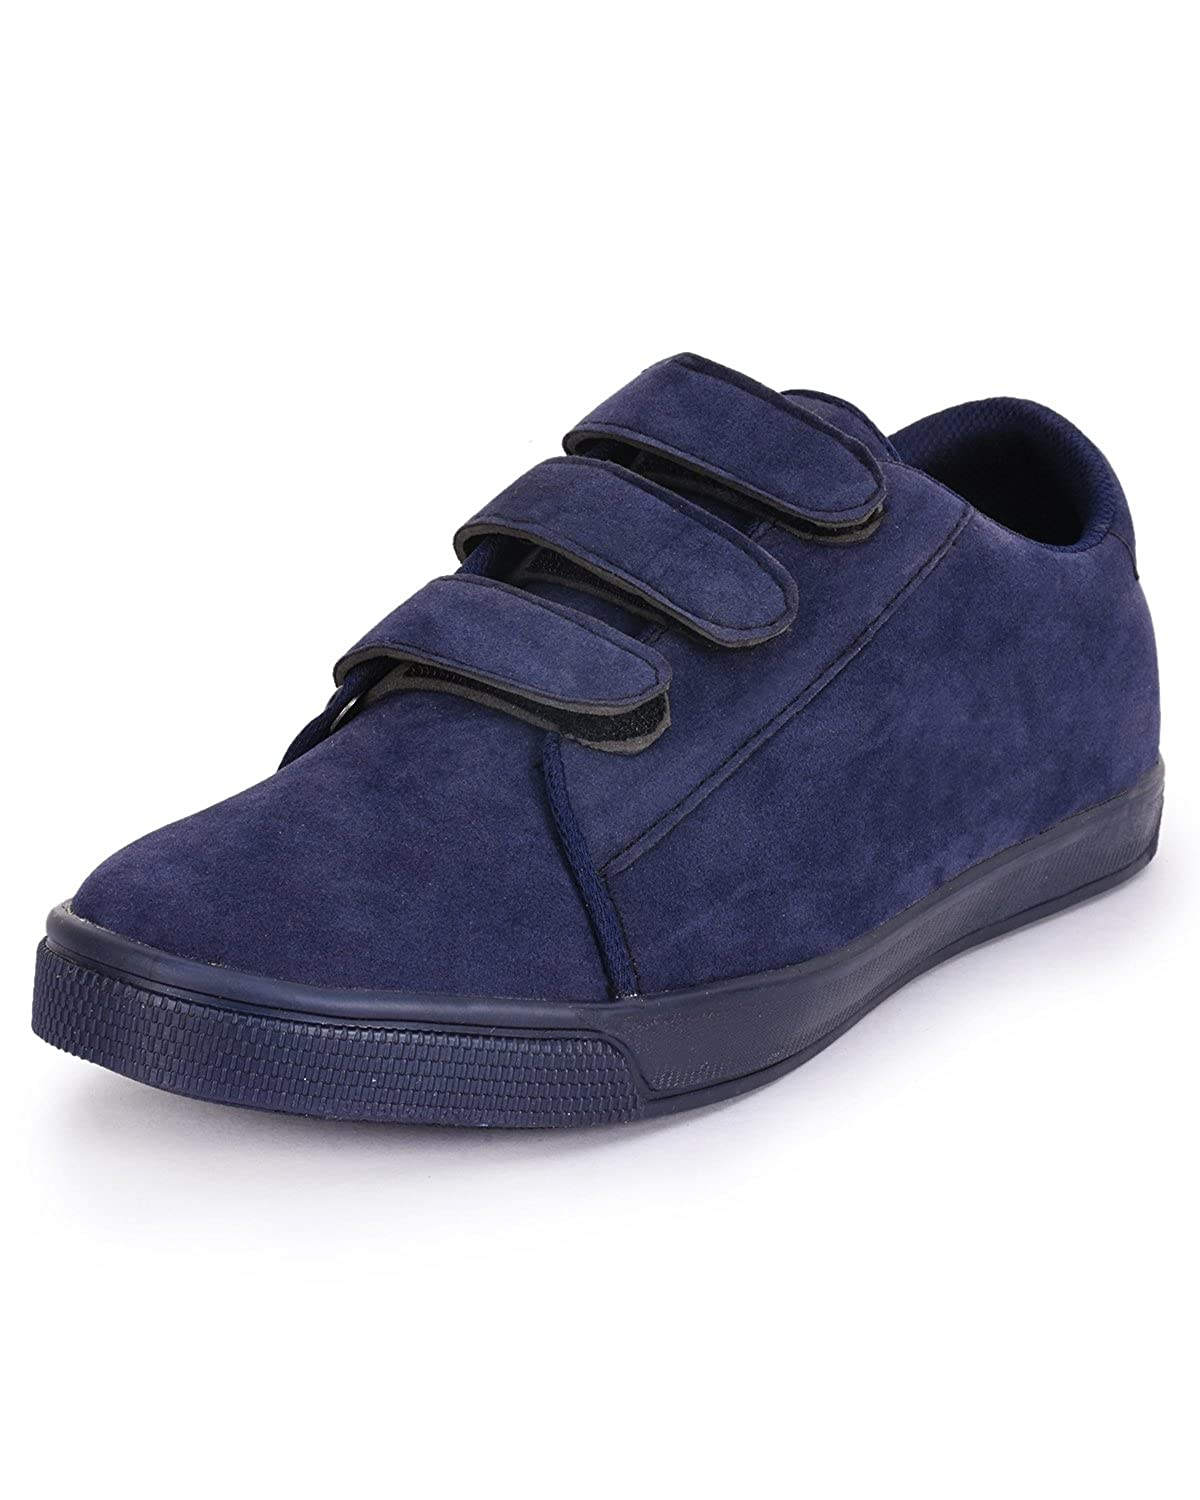 2545adfdcf4 foot n style Men s Blue Suede Smart Casual Shoes  Amazon.in  Shoes    Handbags